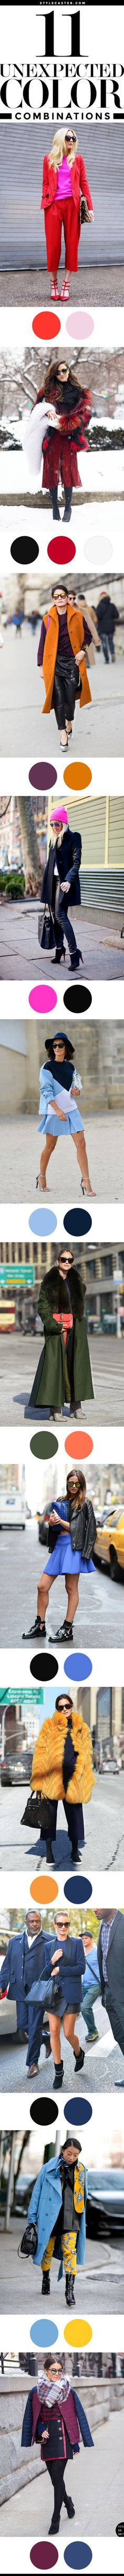 How to wear color like a street style star - 11 incredible color combinations to try now